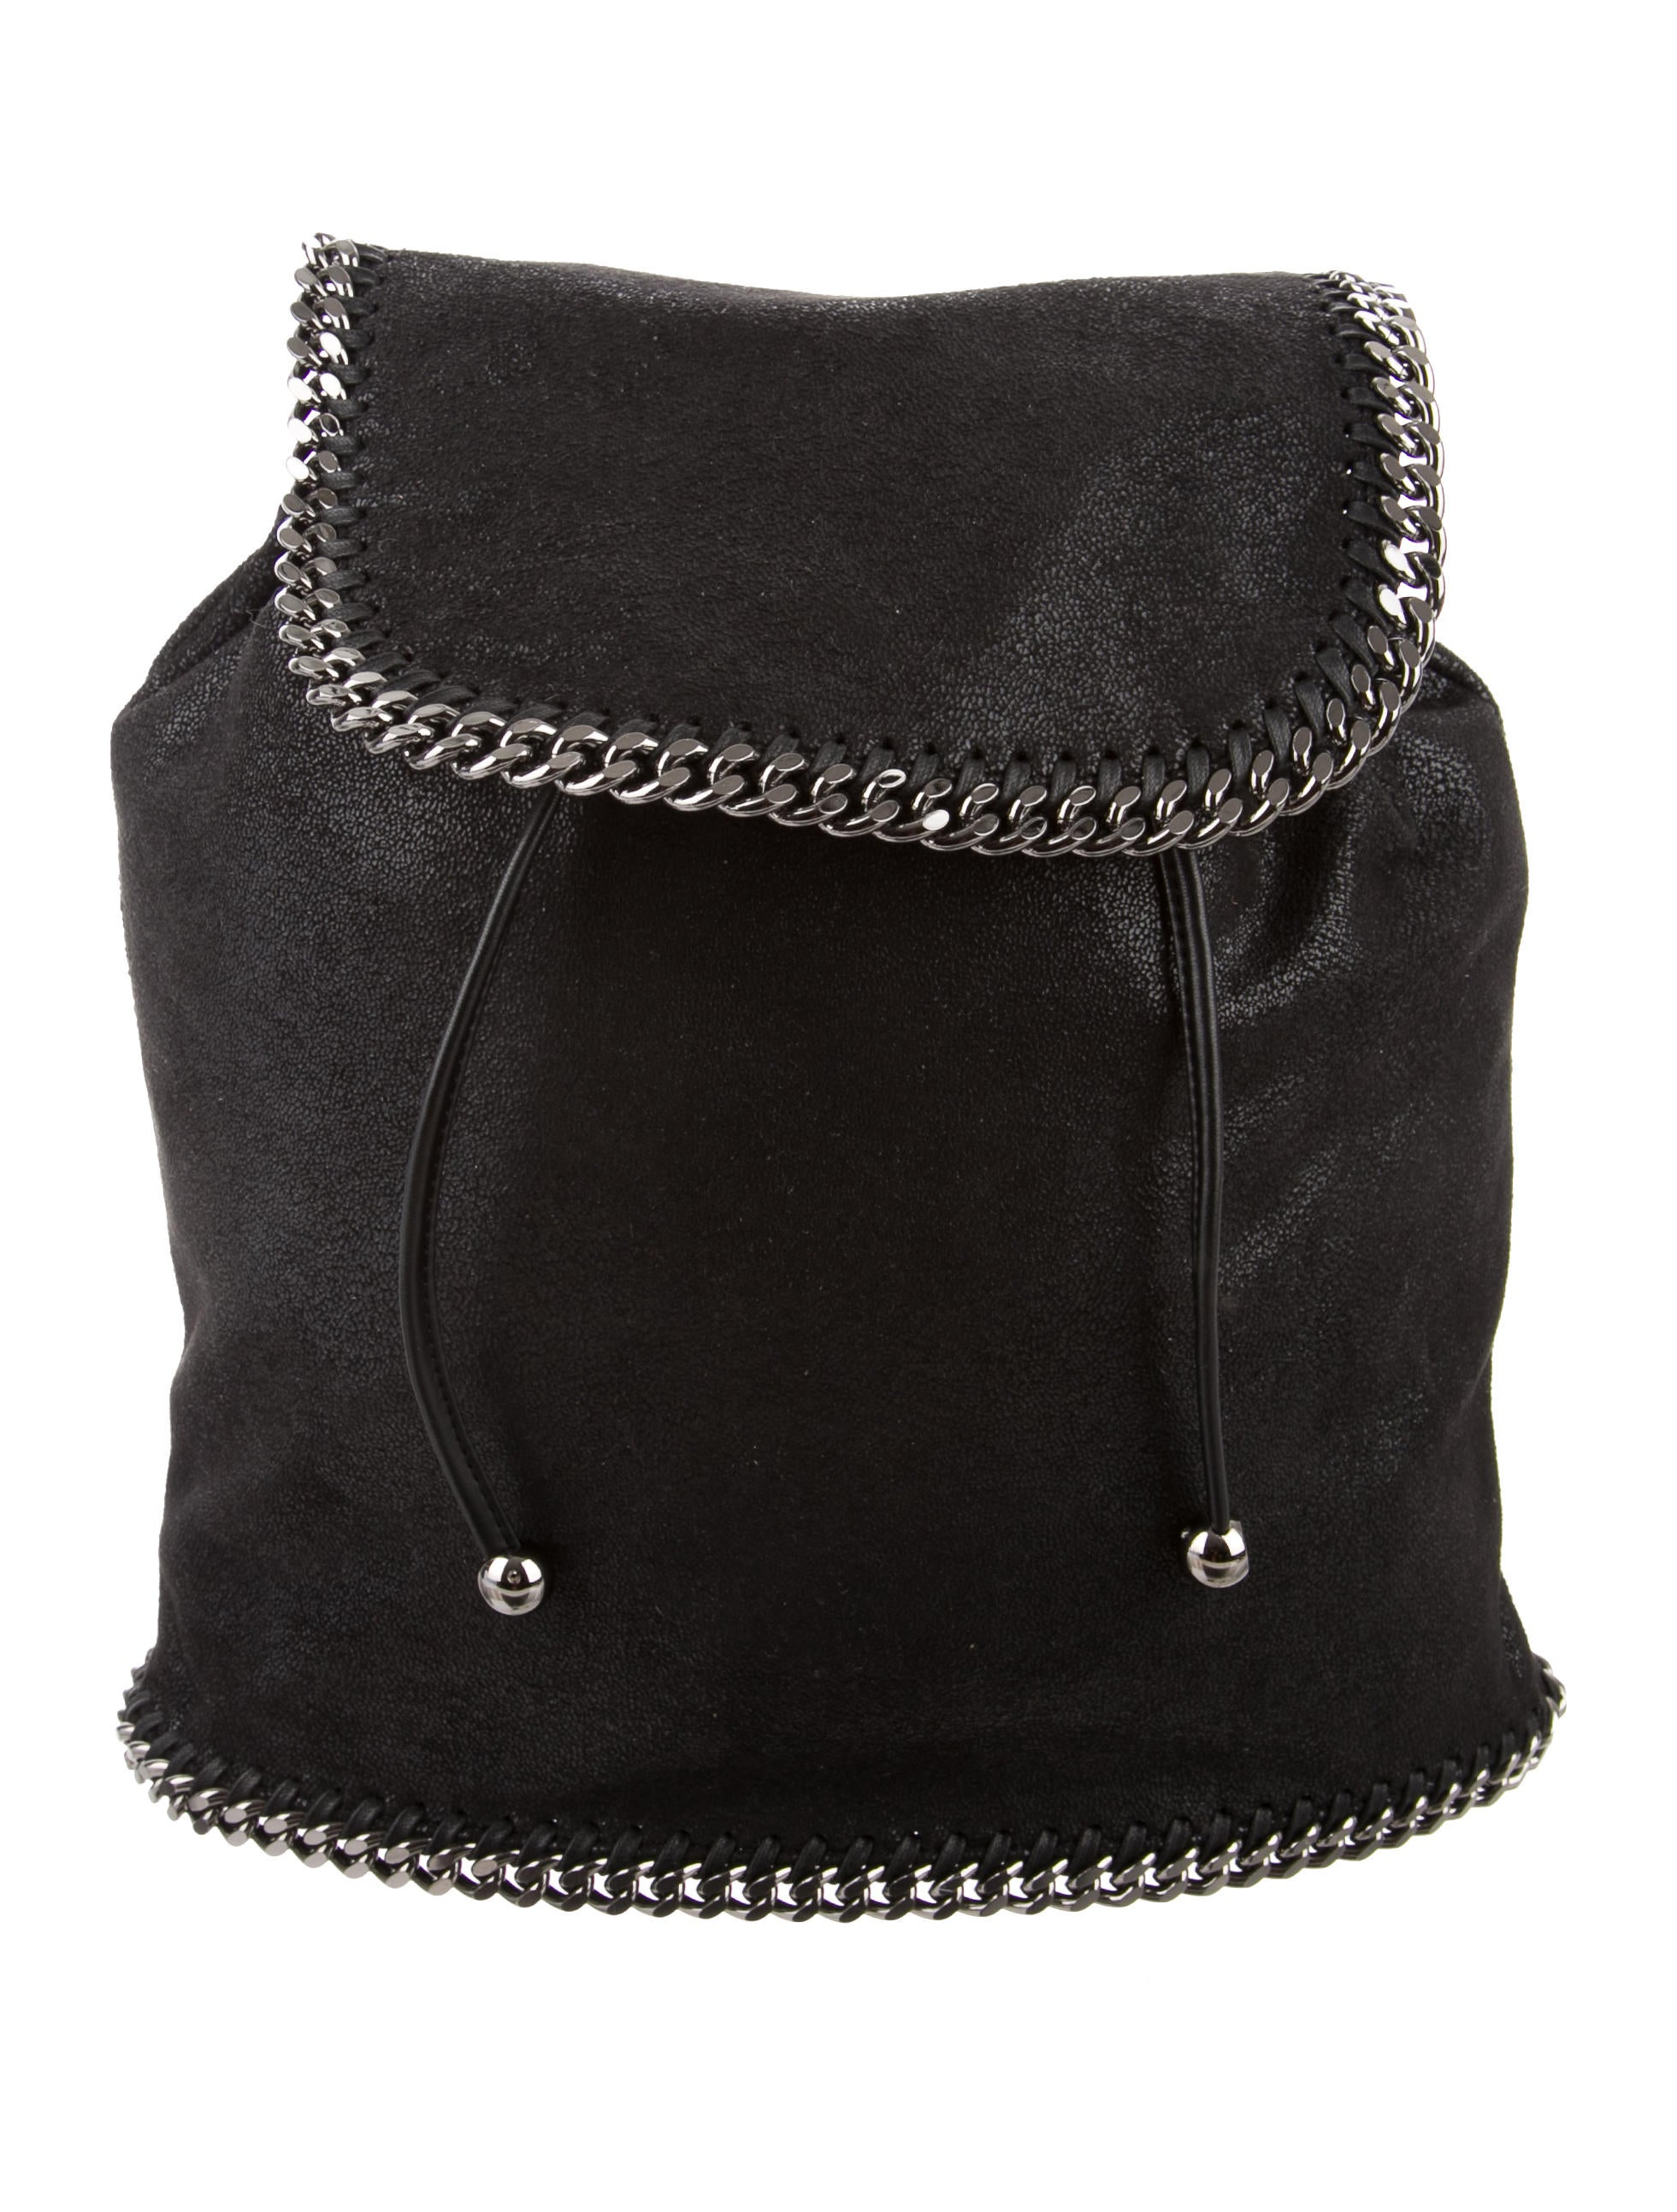 stella mccartney shaggy deer falabella rucksack w tags handbags stl40200 the realreal. Black Bedroom Furniture Sets. Home Design Ideas